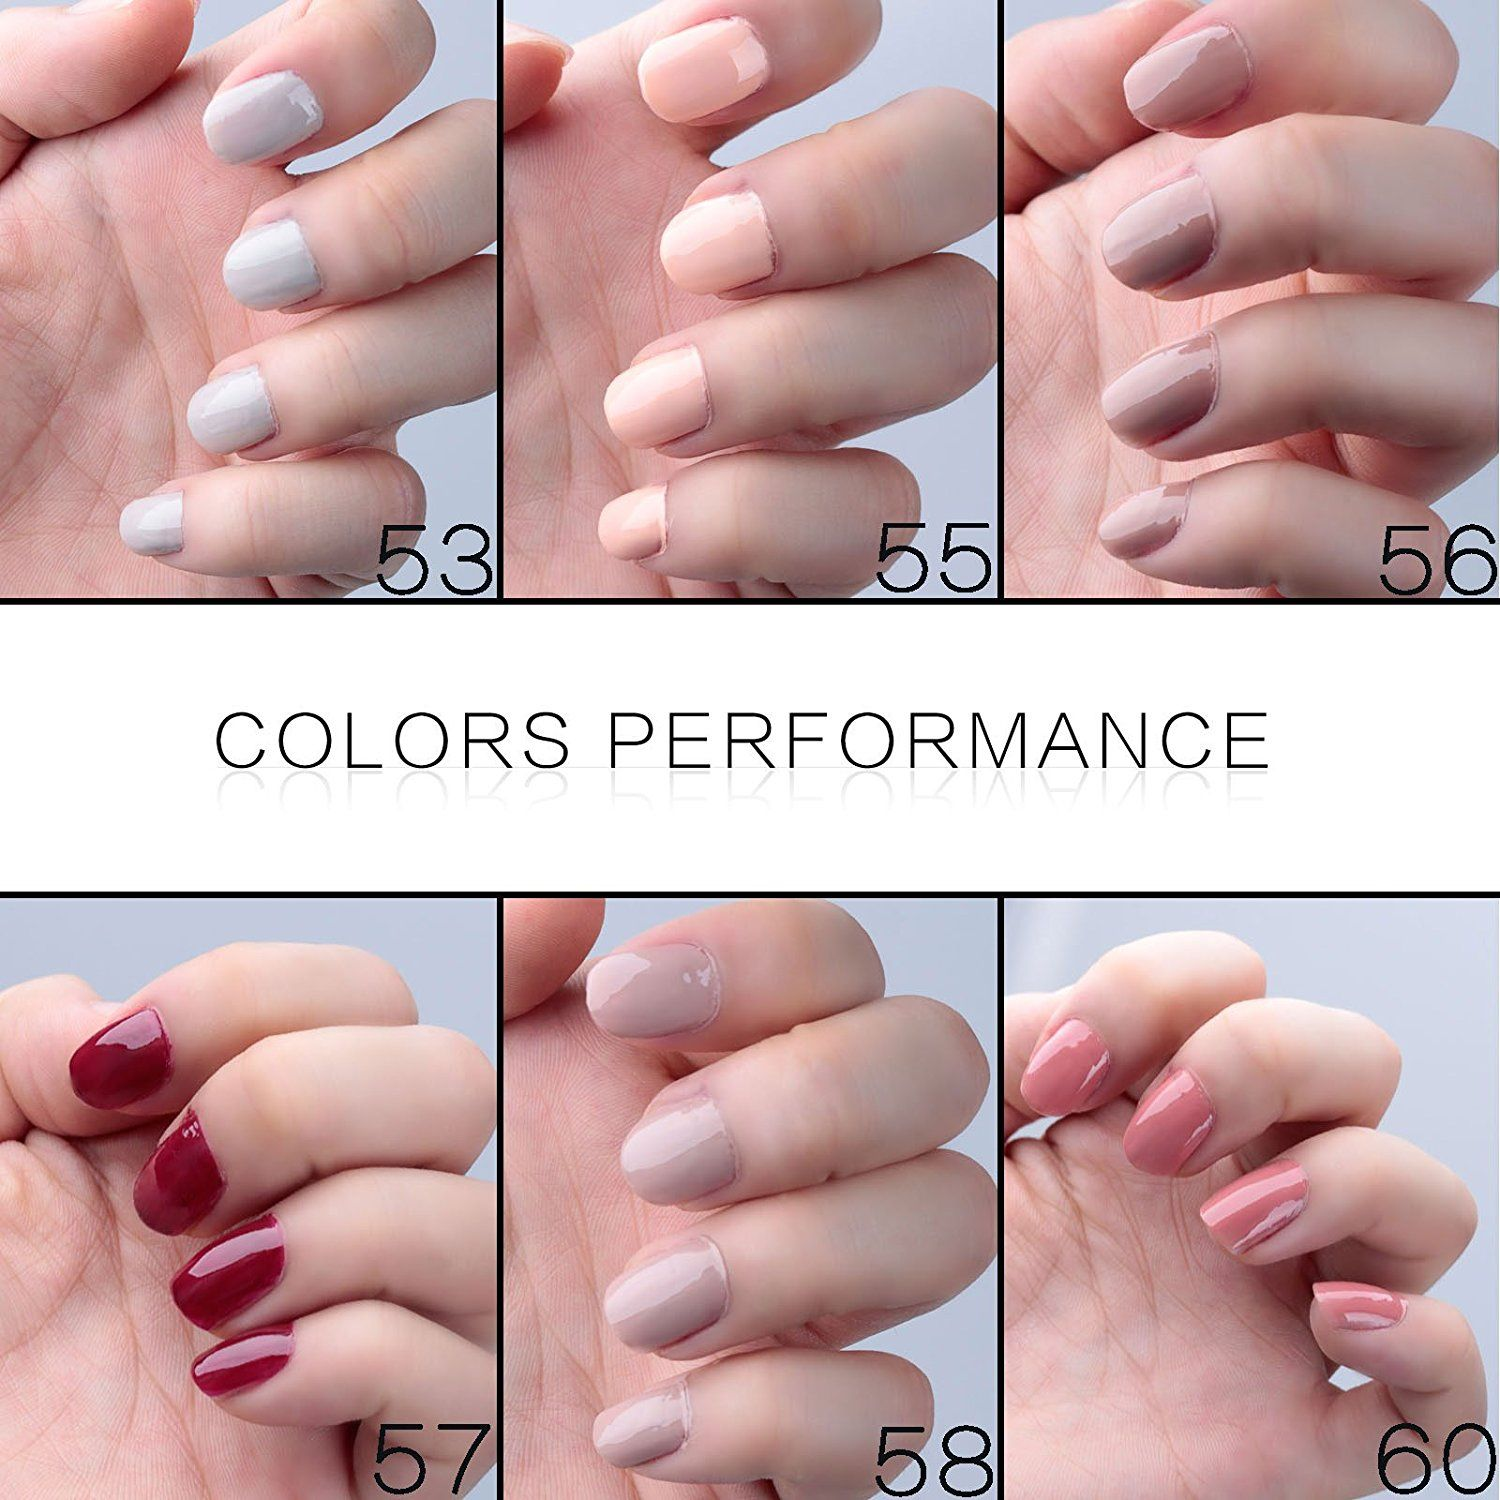 Gellen Nail Polish Review Choices From Over 300 Colors In 2020 Gel Nails Gel Nail Colors Nail Colors